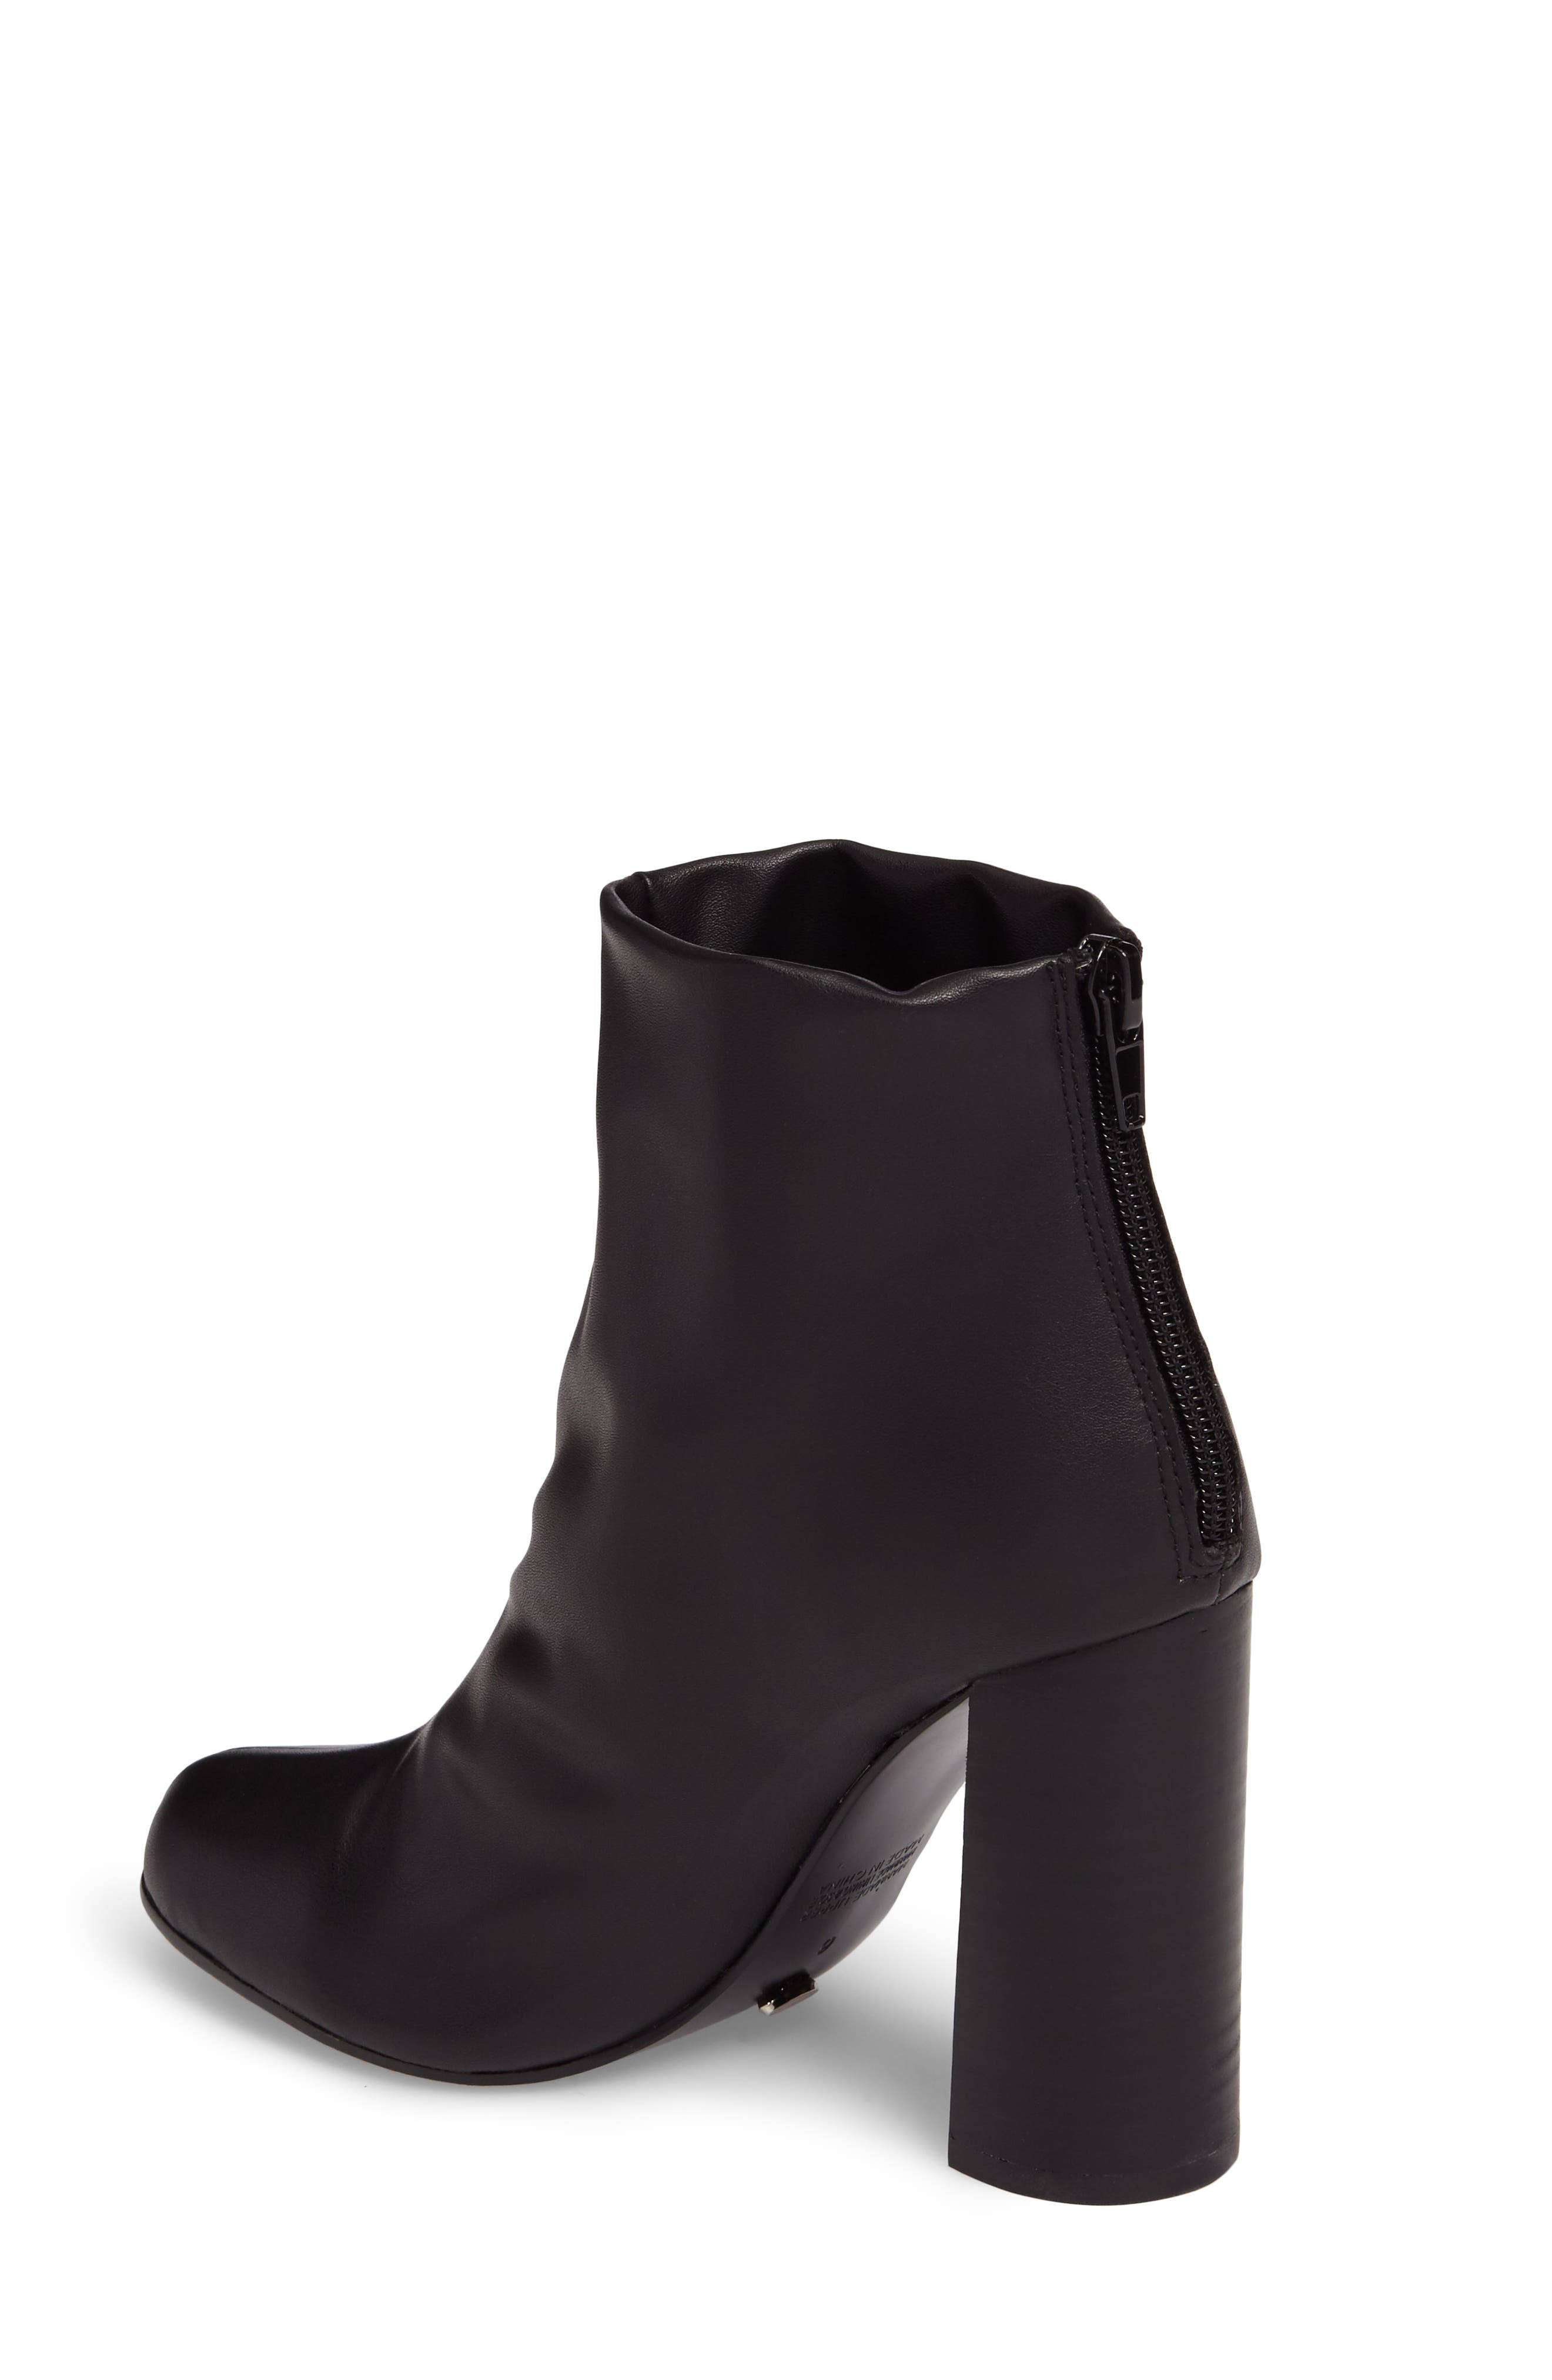 Nyx Stretch Bootie,                             Alternate thumbnail 2, color,                             Black Nappa Leather